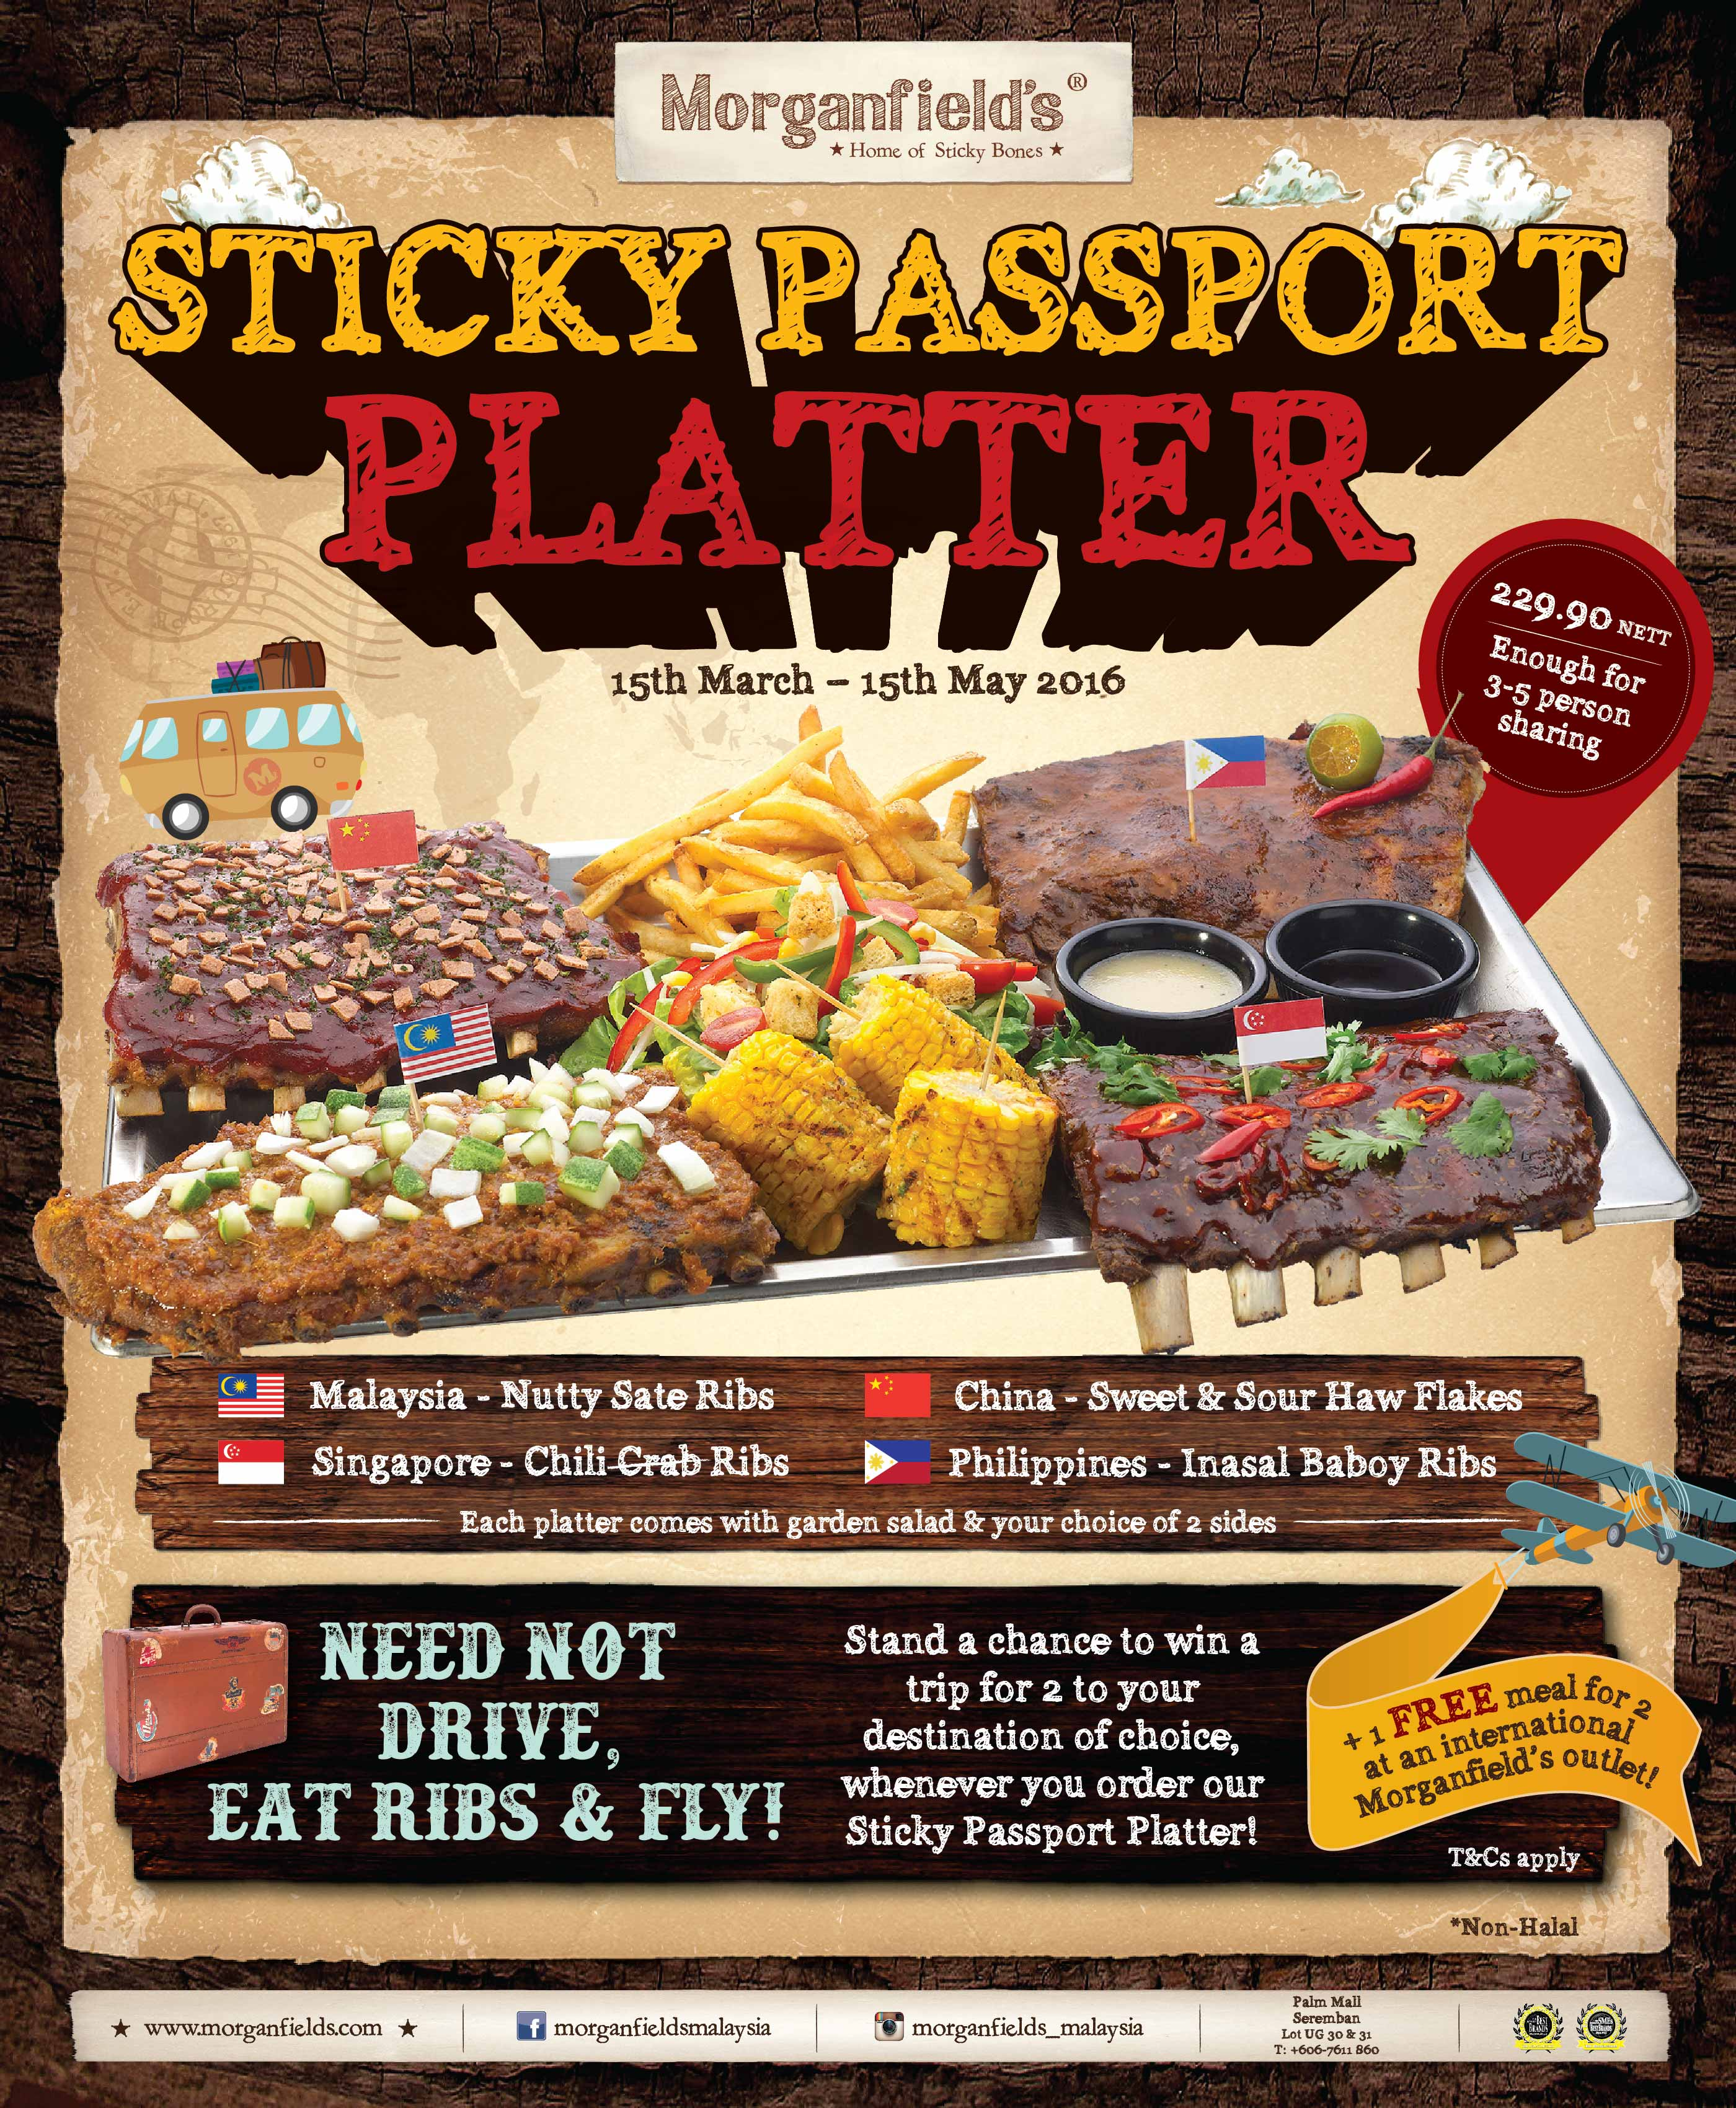 Morgnanfield's Sticky Passport Platter